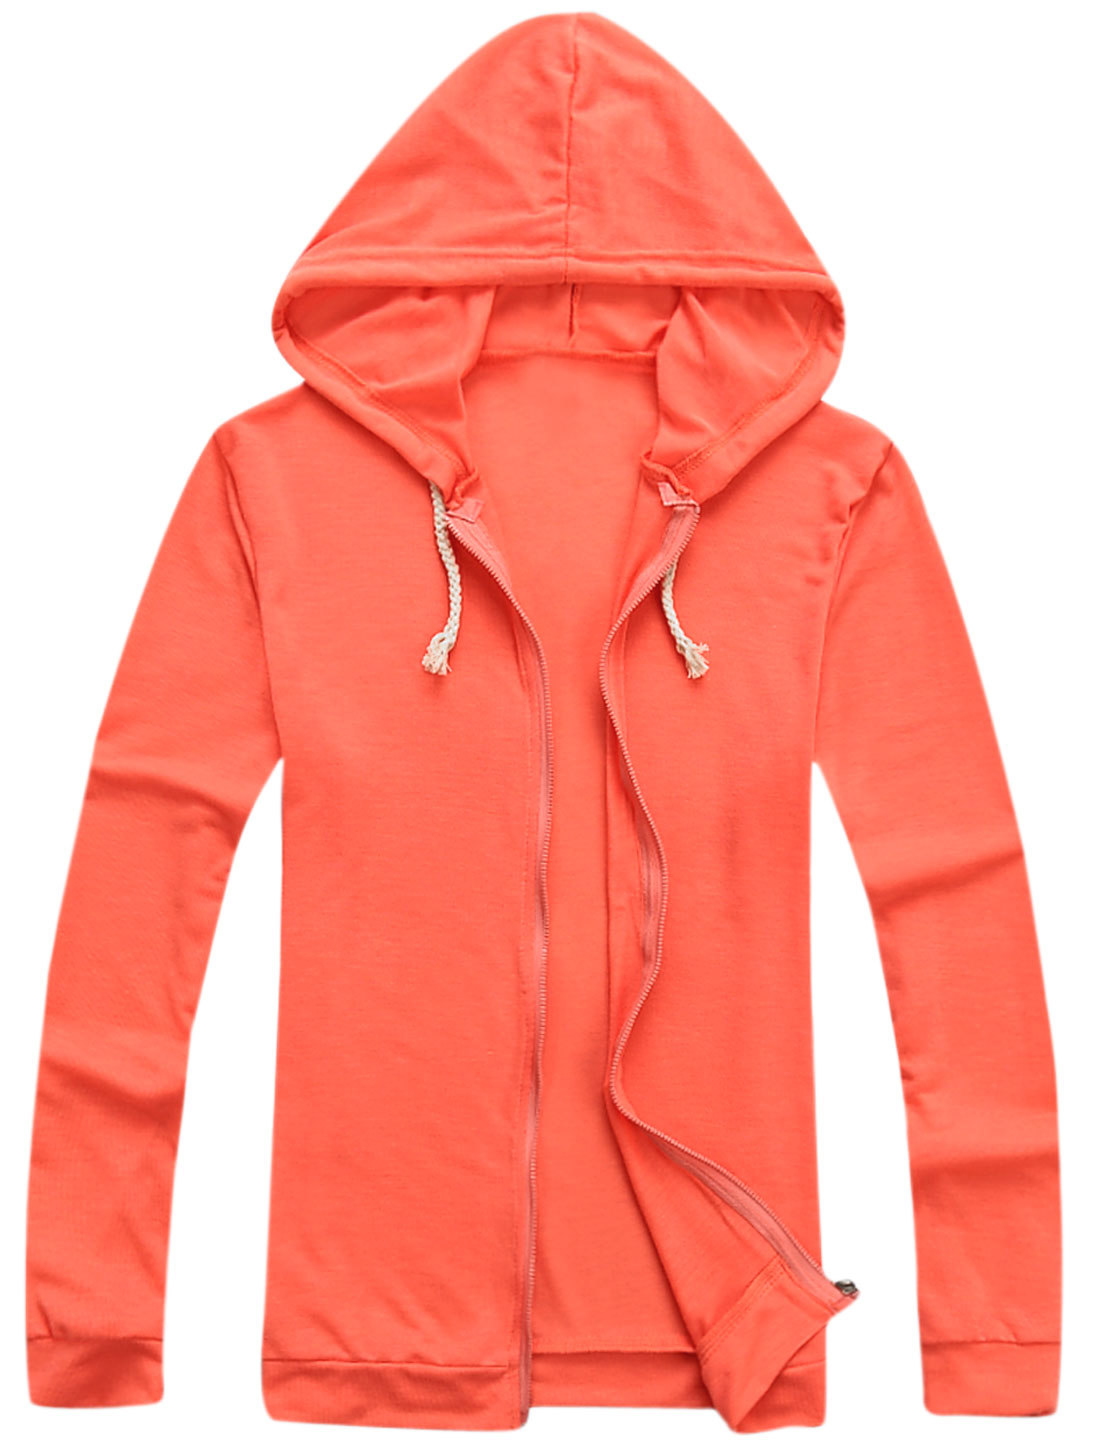 Men Zip Up Front Long Sleeves Cozy Fit Thin Hooded Jacket Orange M